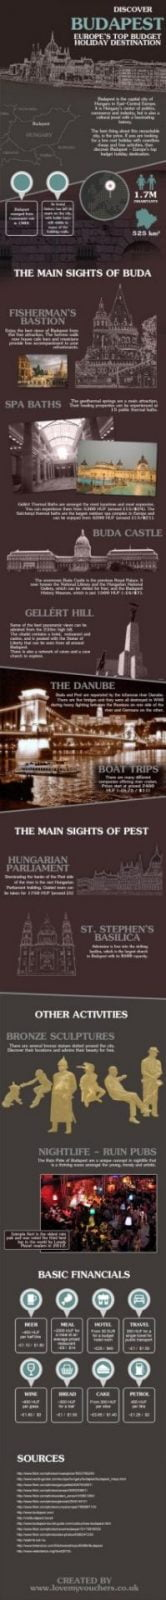 A guide to Budapest infographic